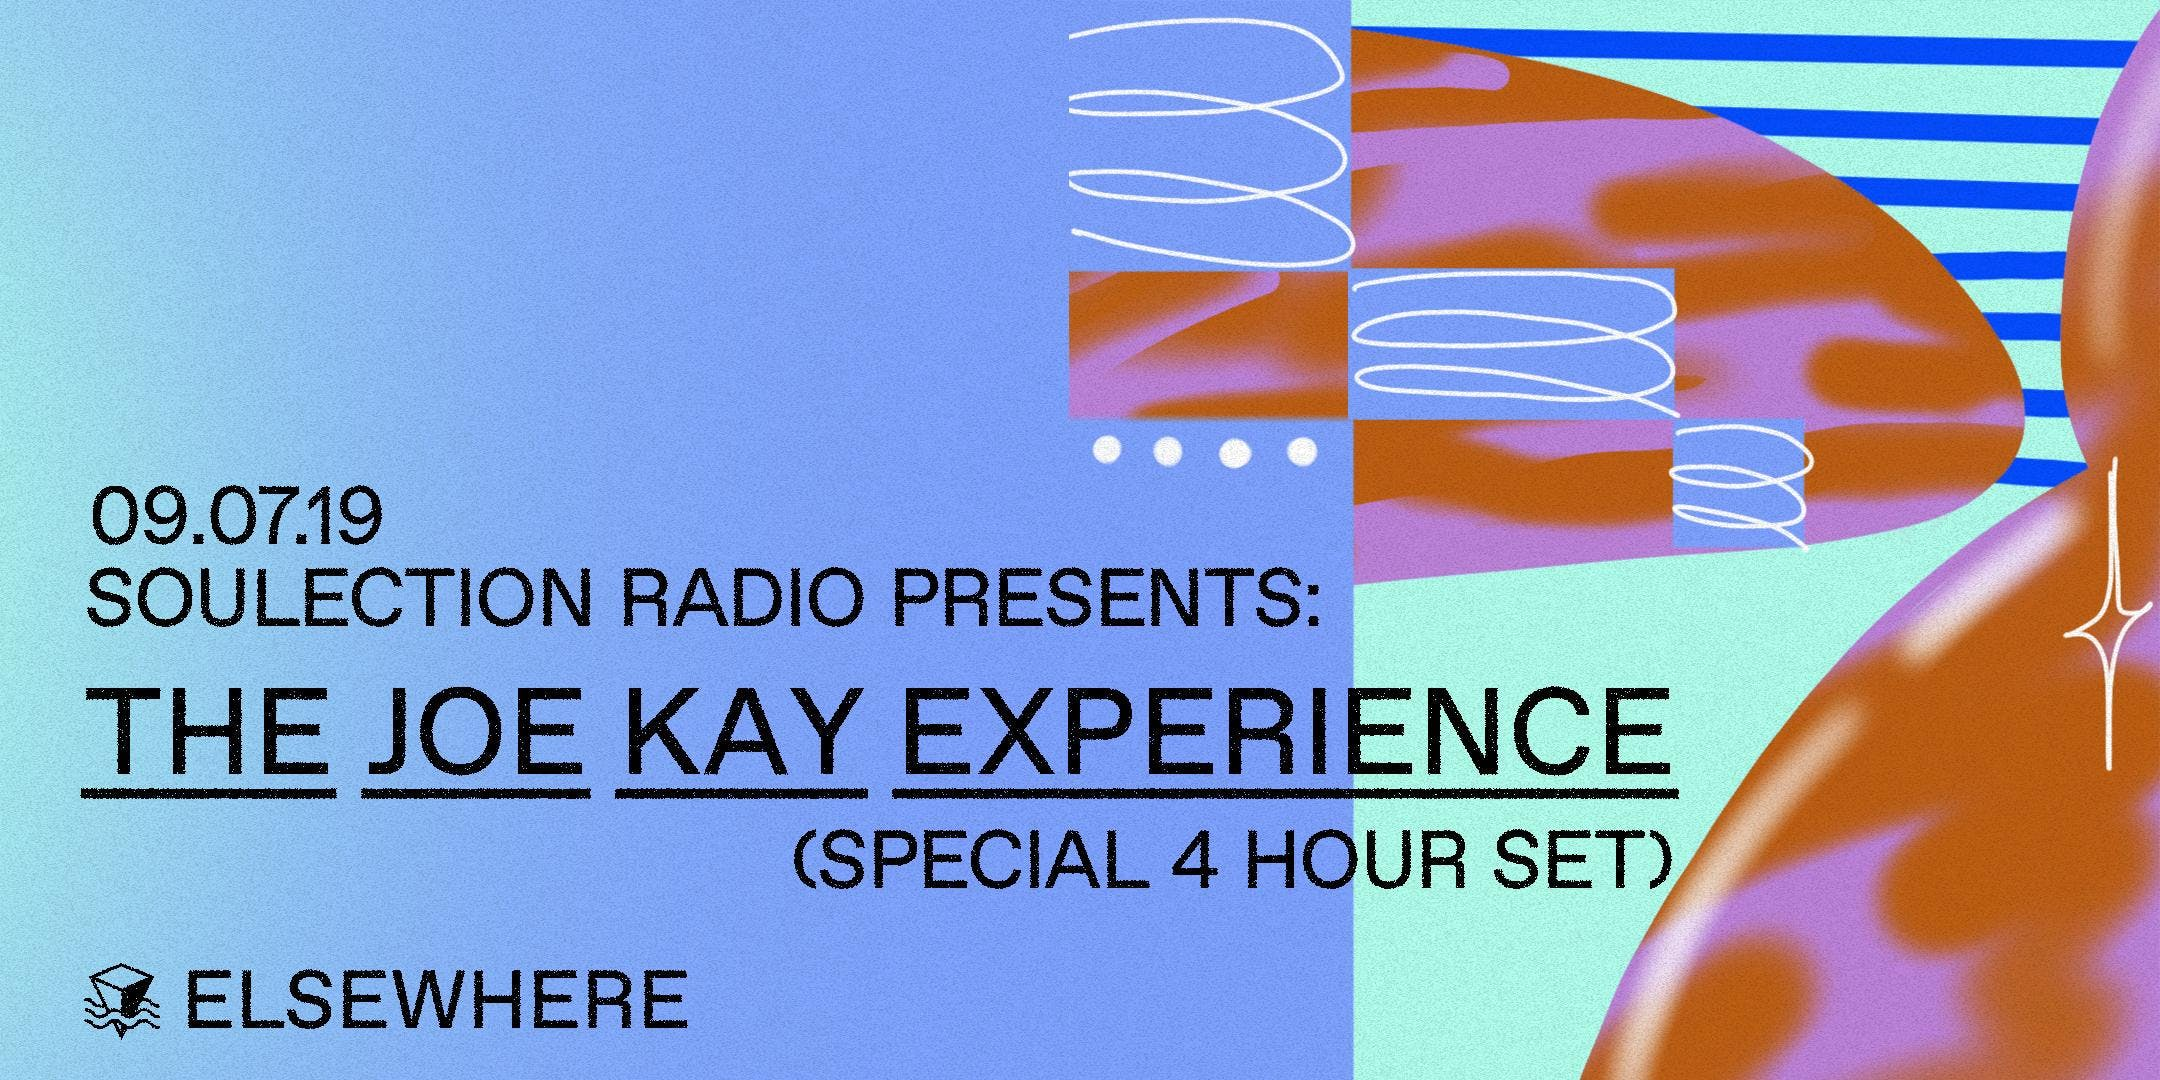 Soulection Radio Presents: The Joe Kay Experience (Special 4 Hour Set)